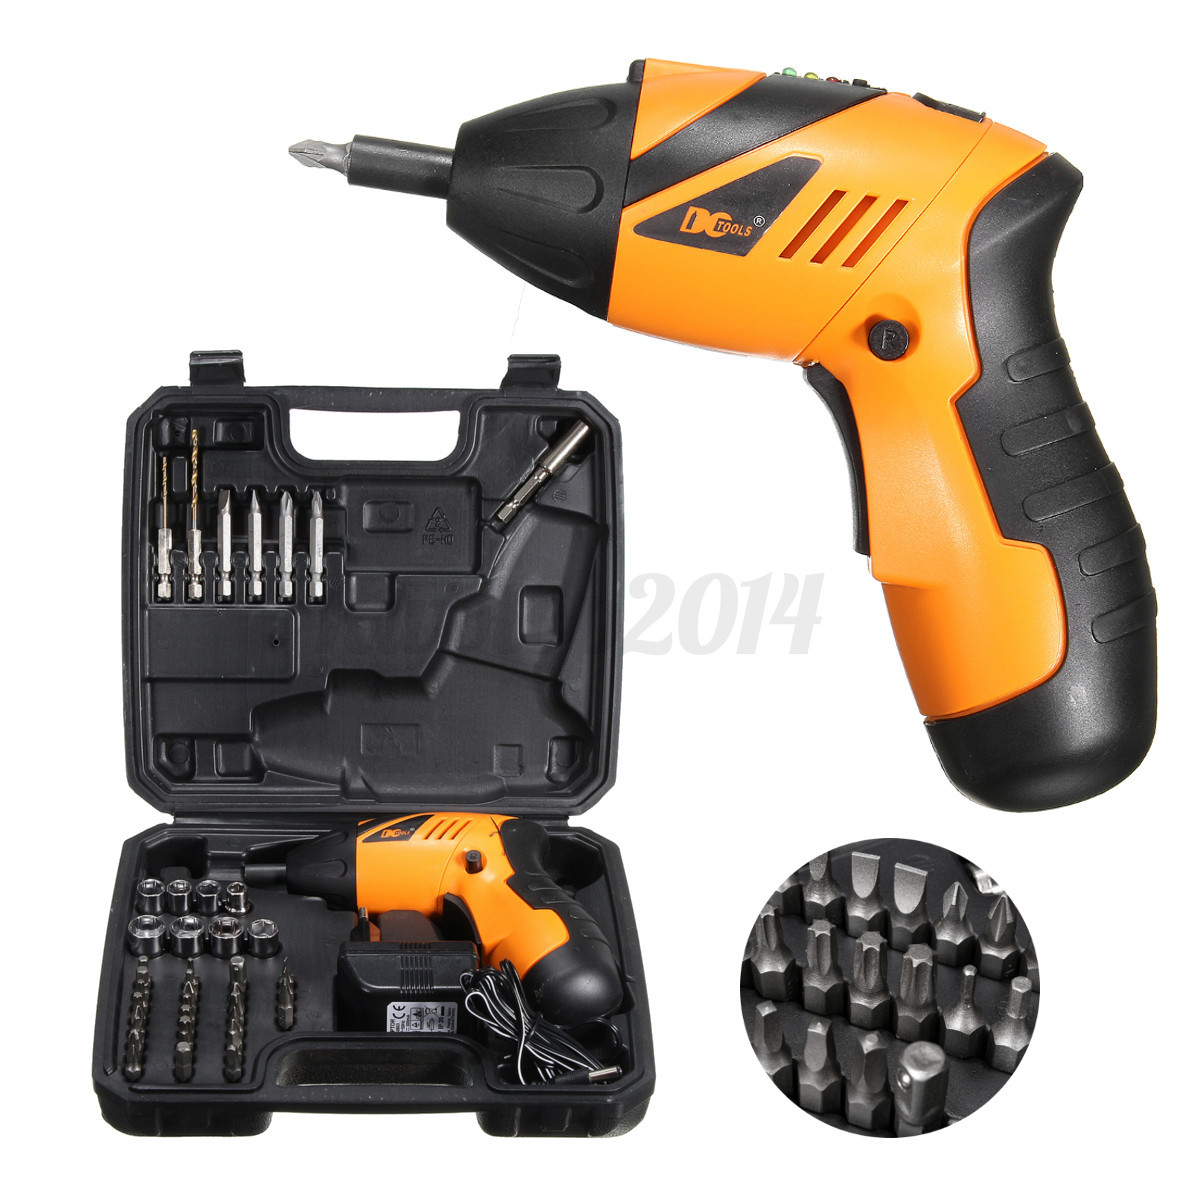 45 in 1 power tool set rechargeable cordless electric screwdriver drill kit ebay. Black Bedroom Furniture Sets. Home Design Ideas